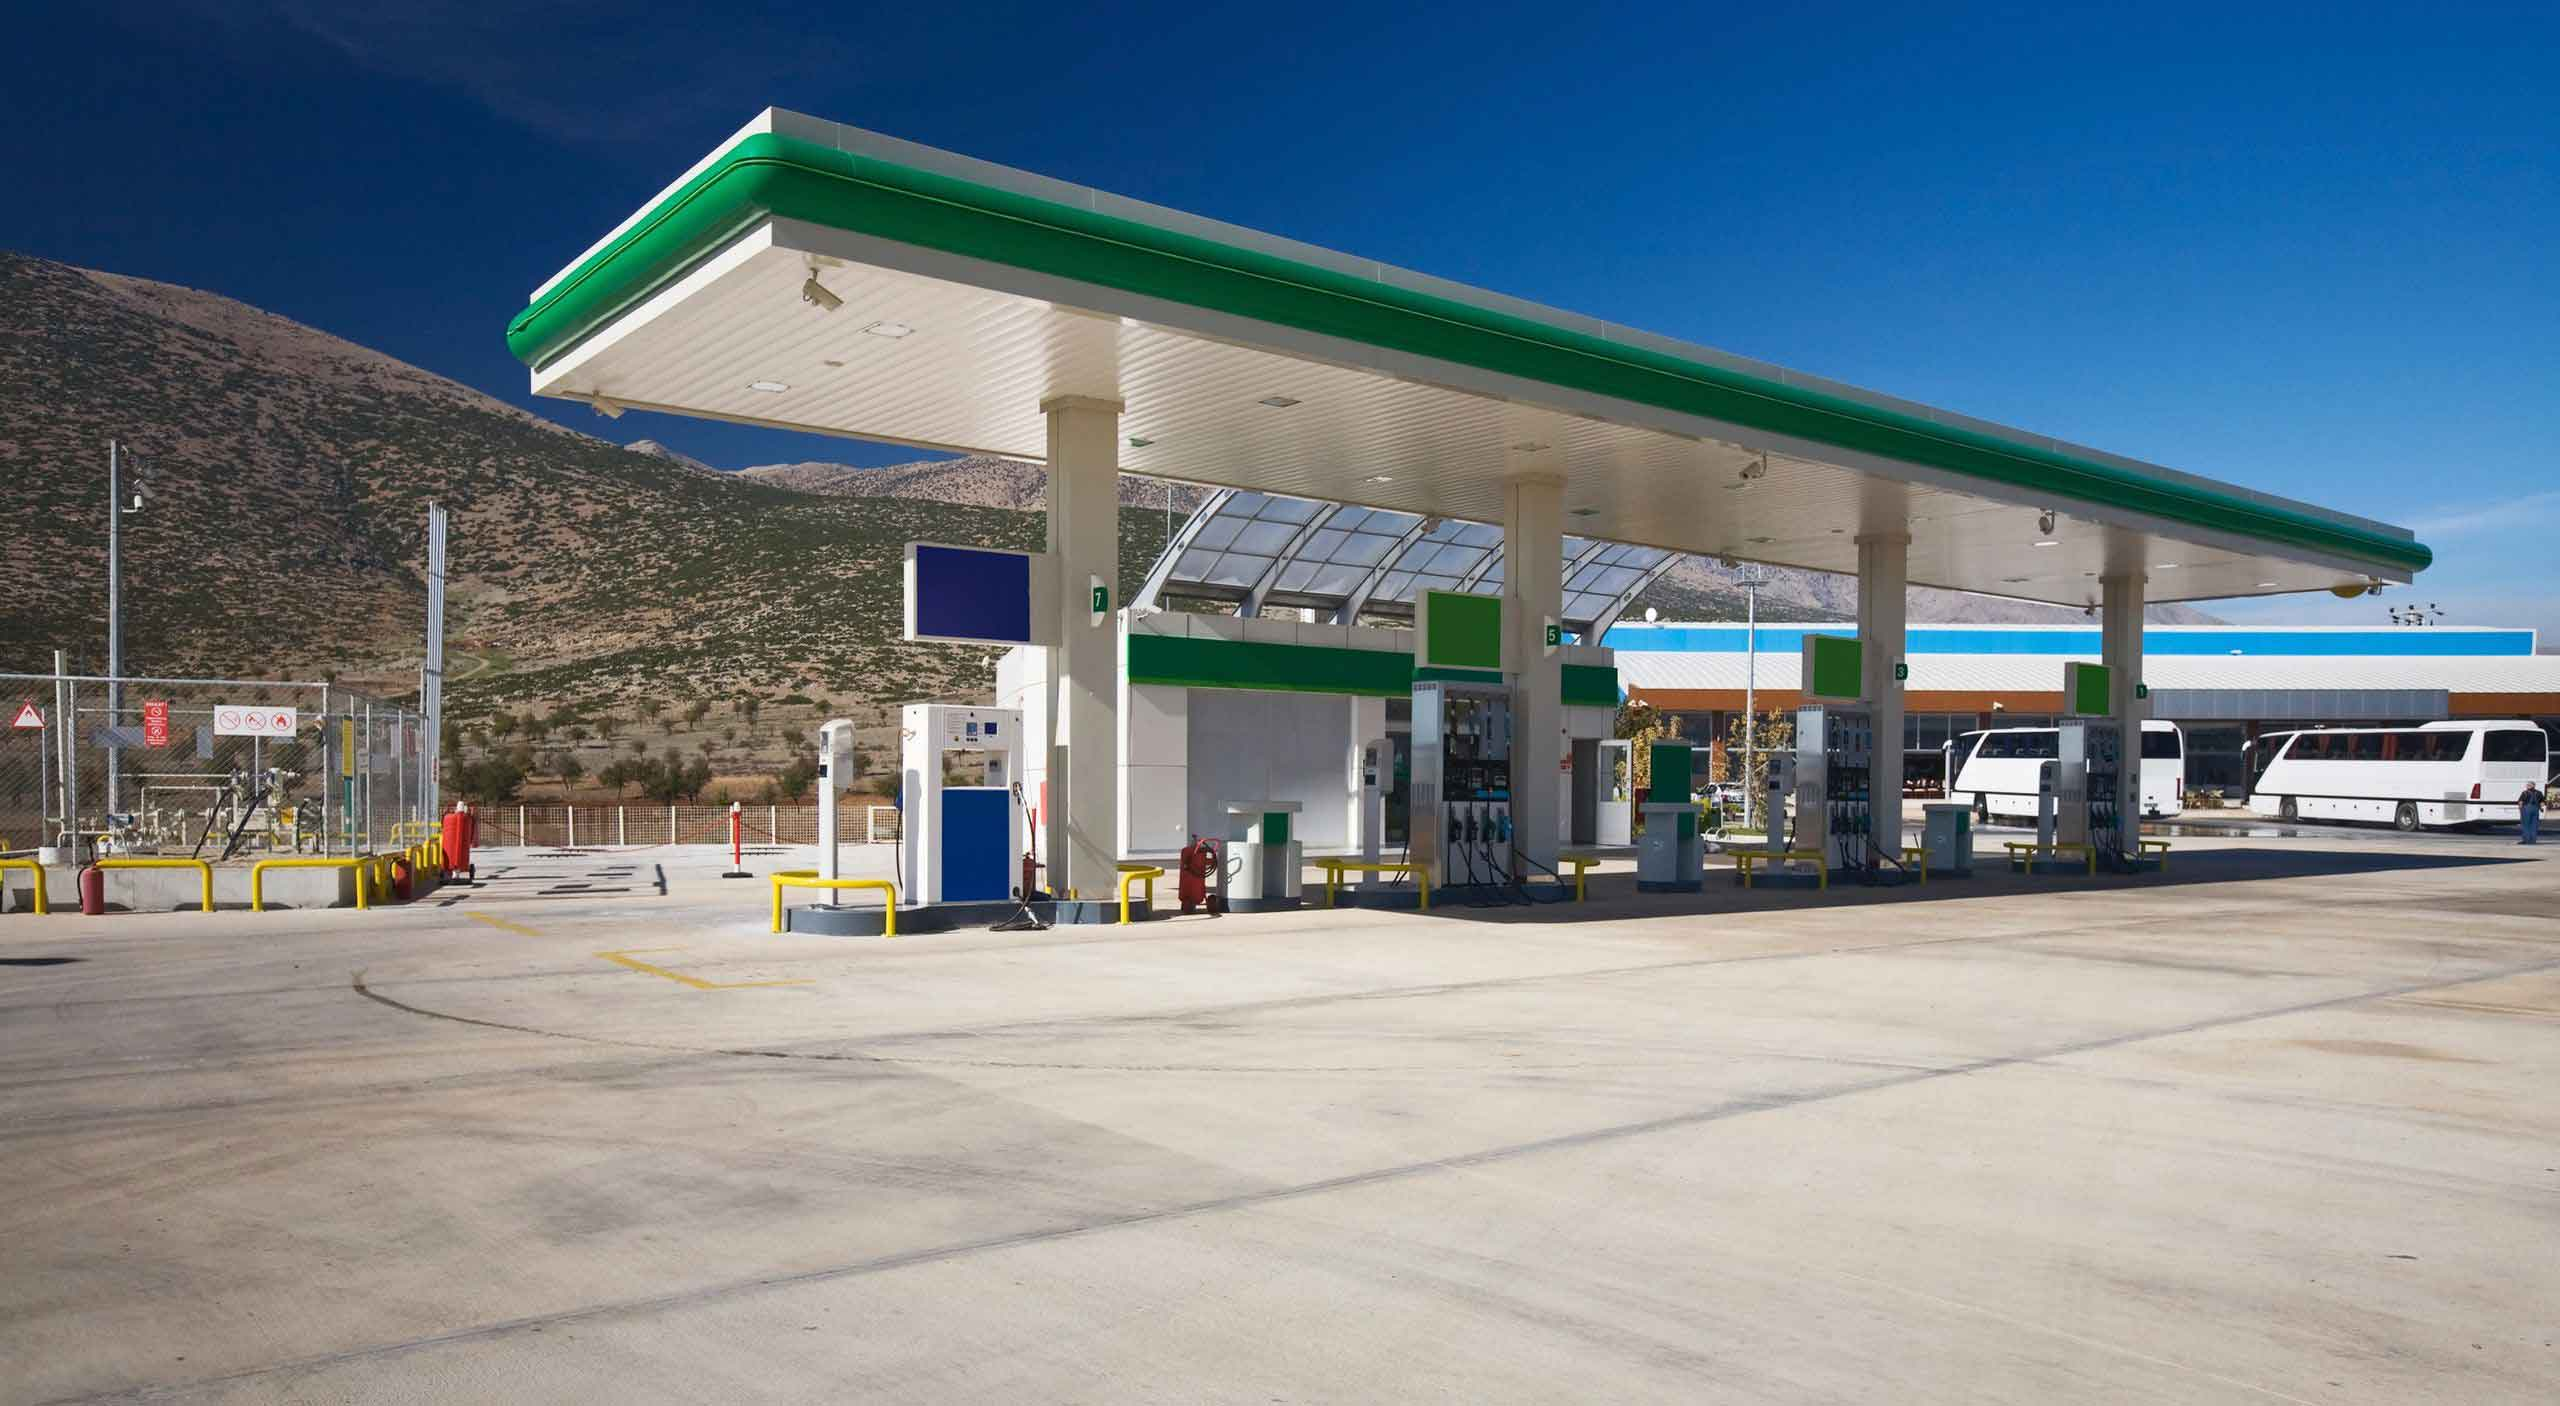 A natural gas filling station.